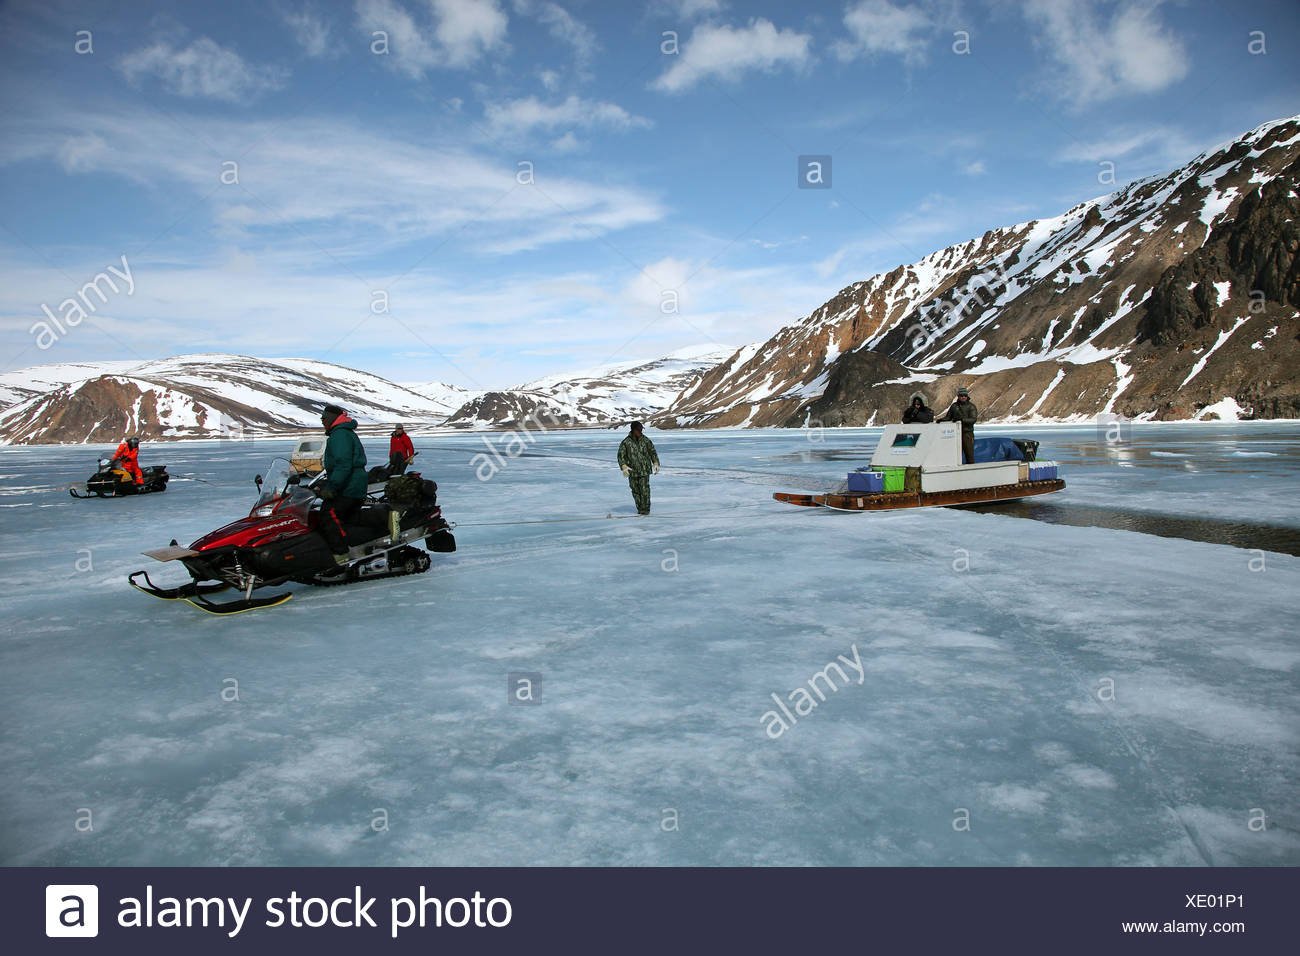 the Qamutik is being pulled over a crack in the ice, Canada, Nunavut - Stock Image